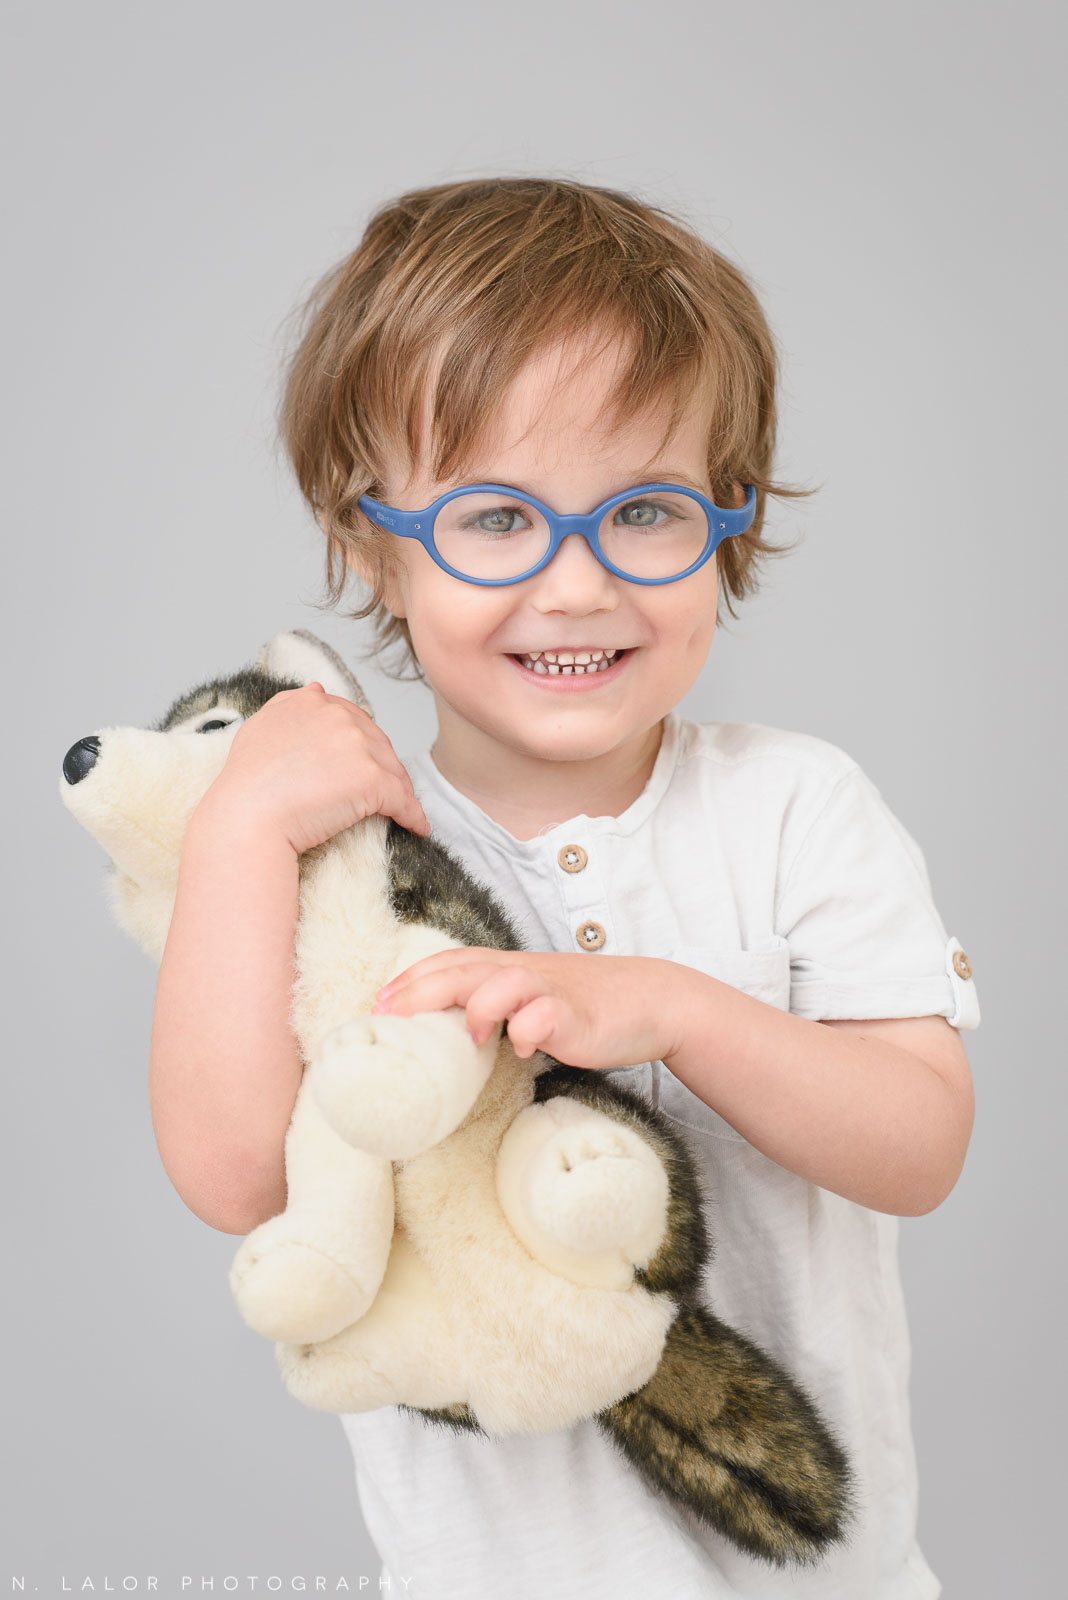 Hugging a toy dog. Simple studio portrait session with N. Lalor Photography in Greenwich, CT.